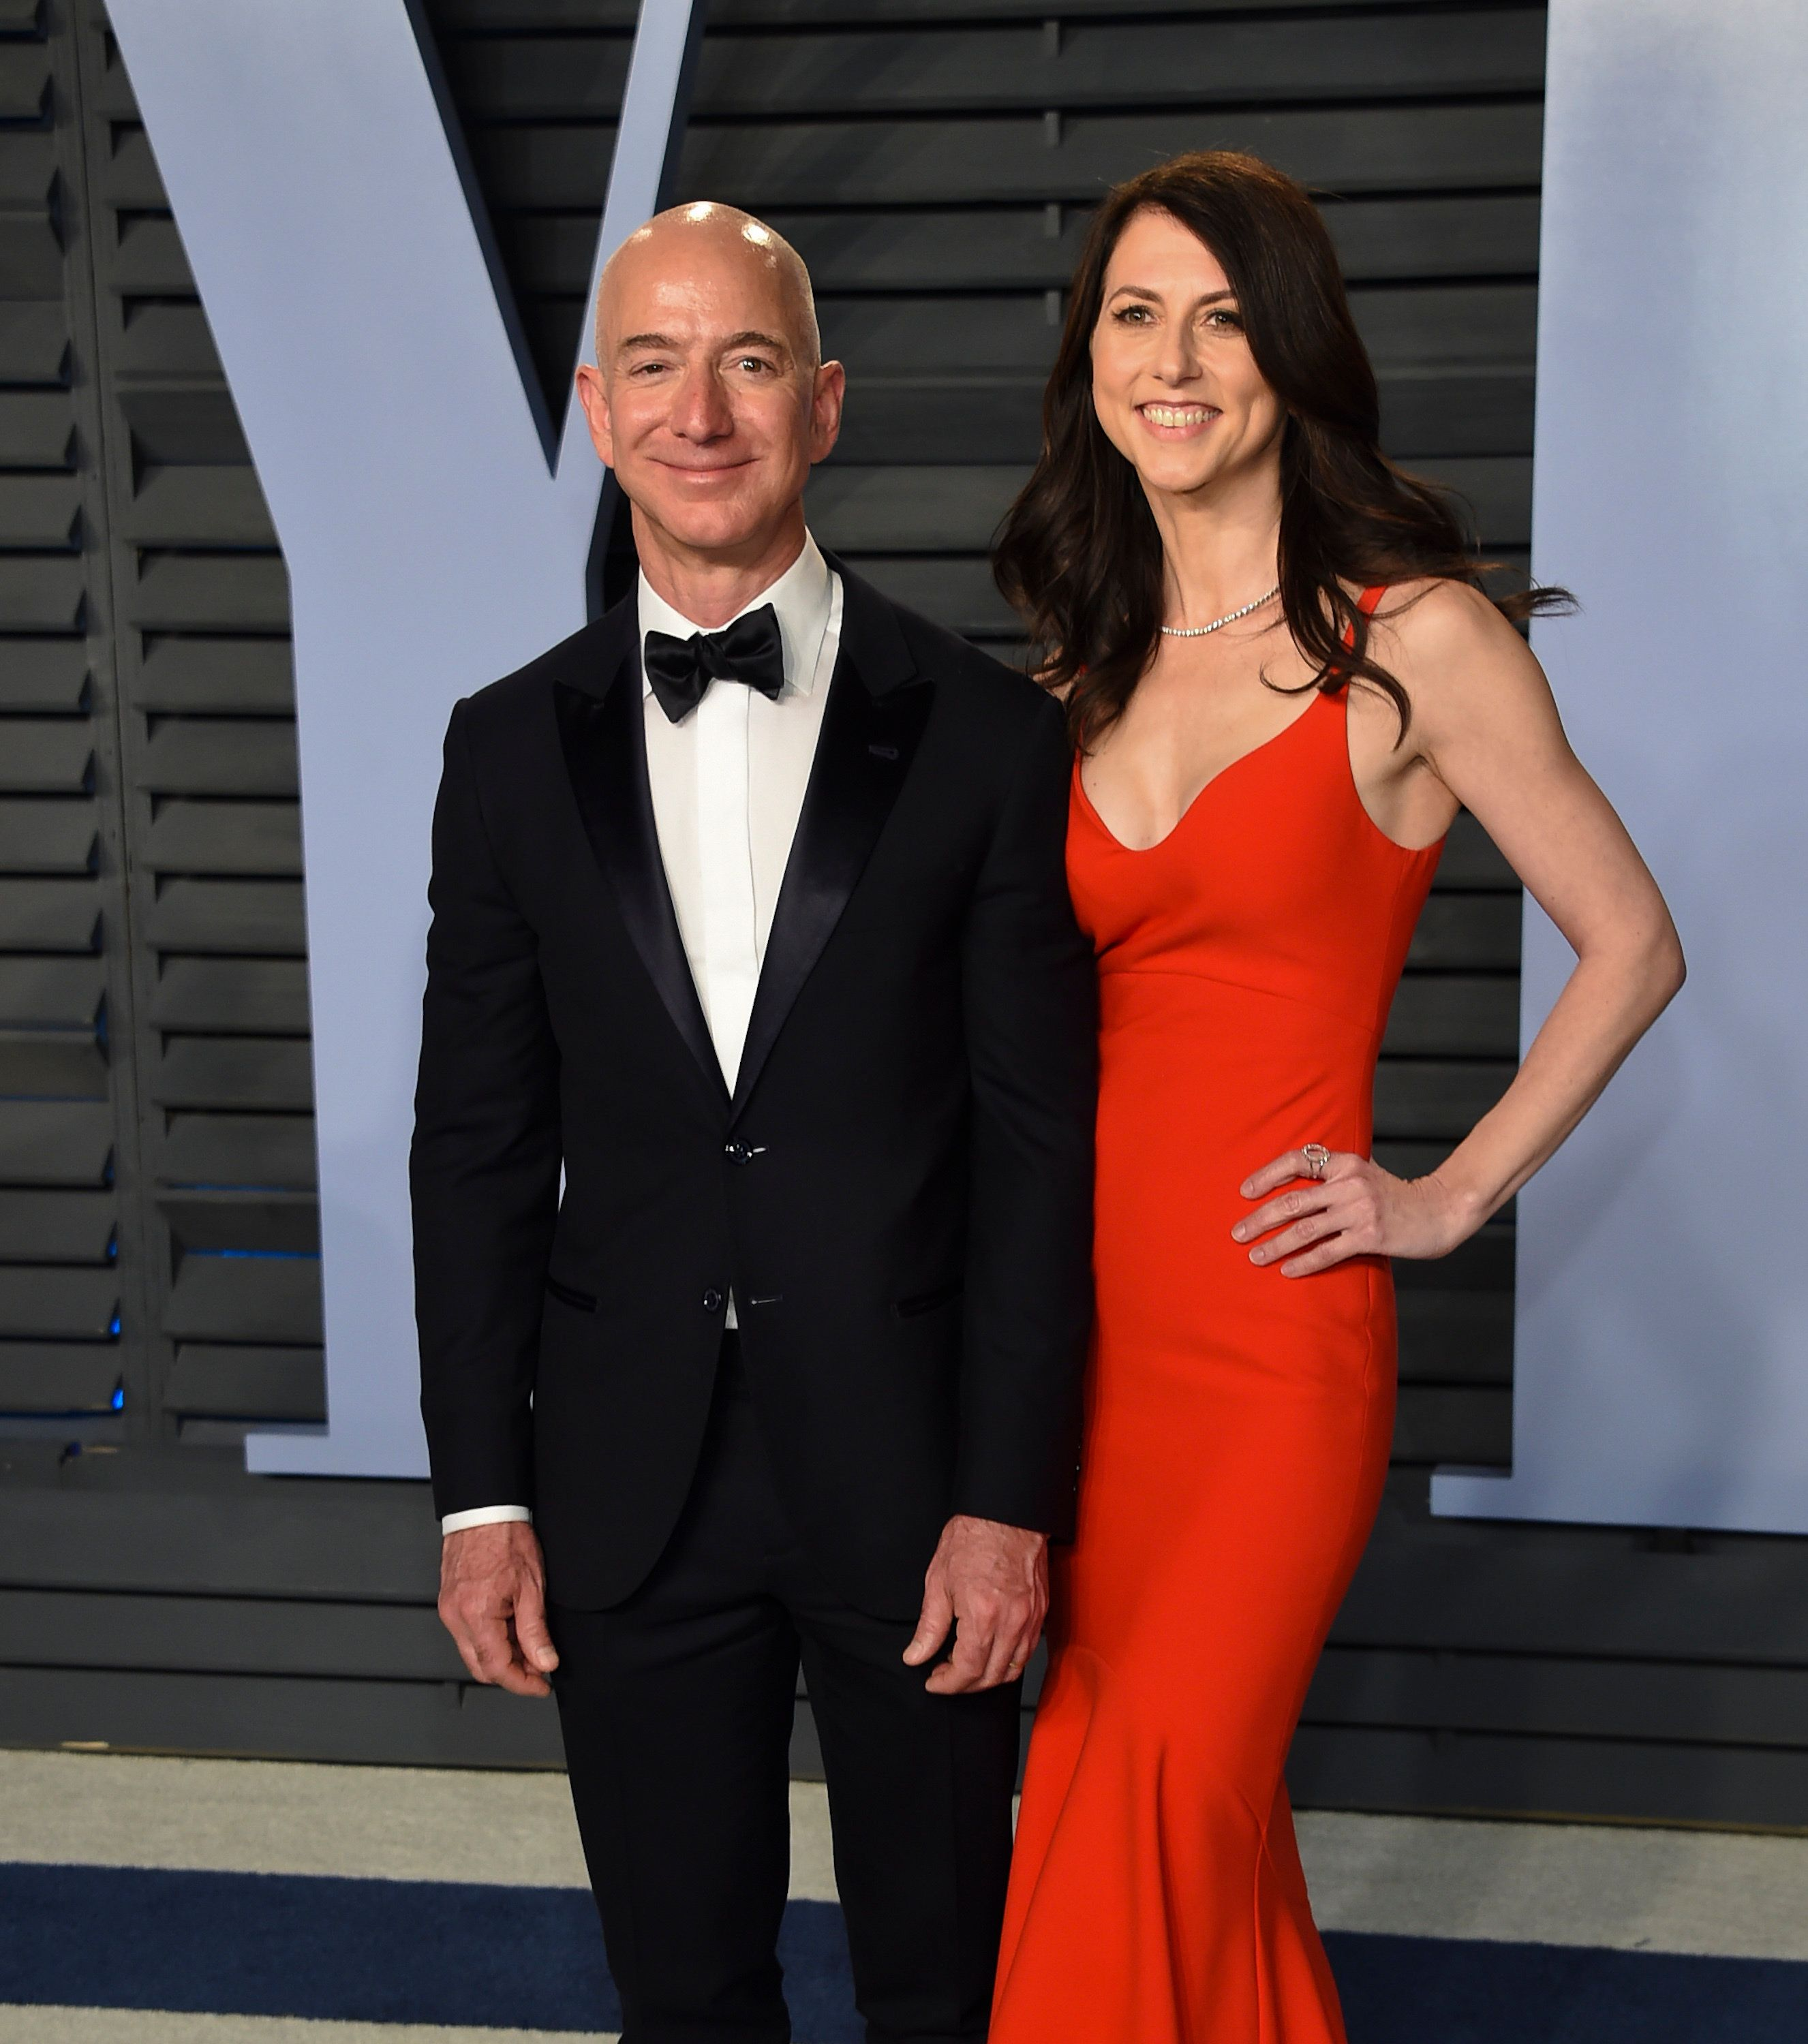 Jeff and Mac Kenzie Bezos have been married for 25 years.